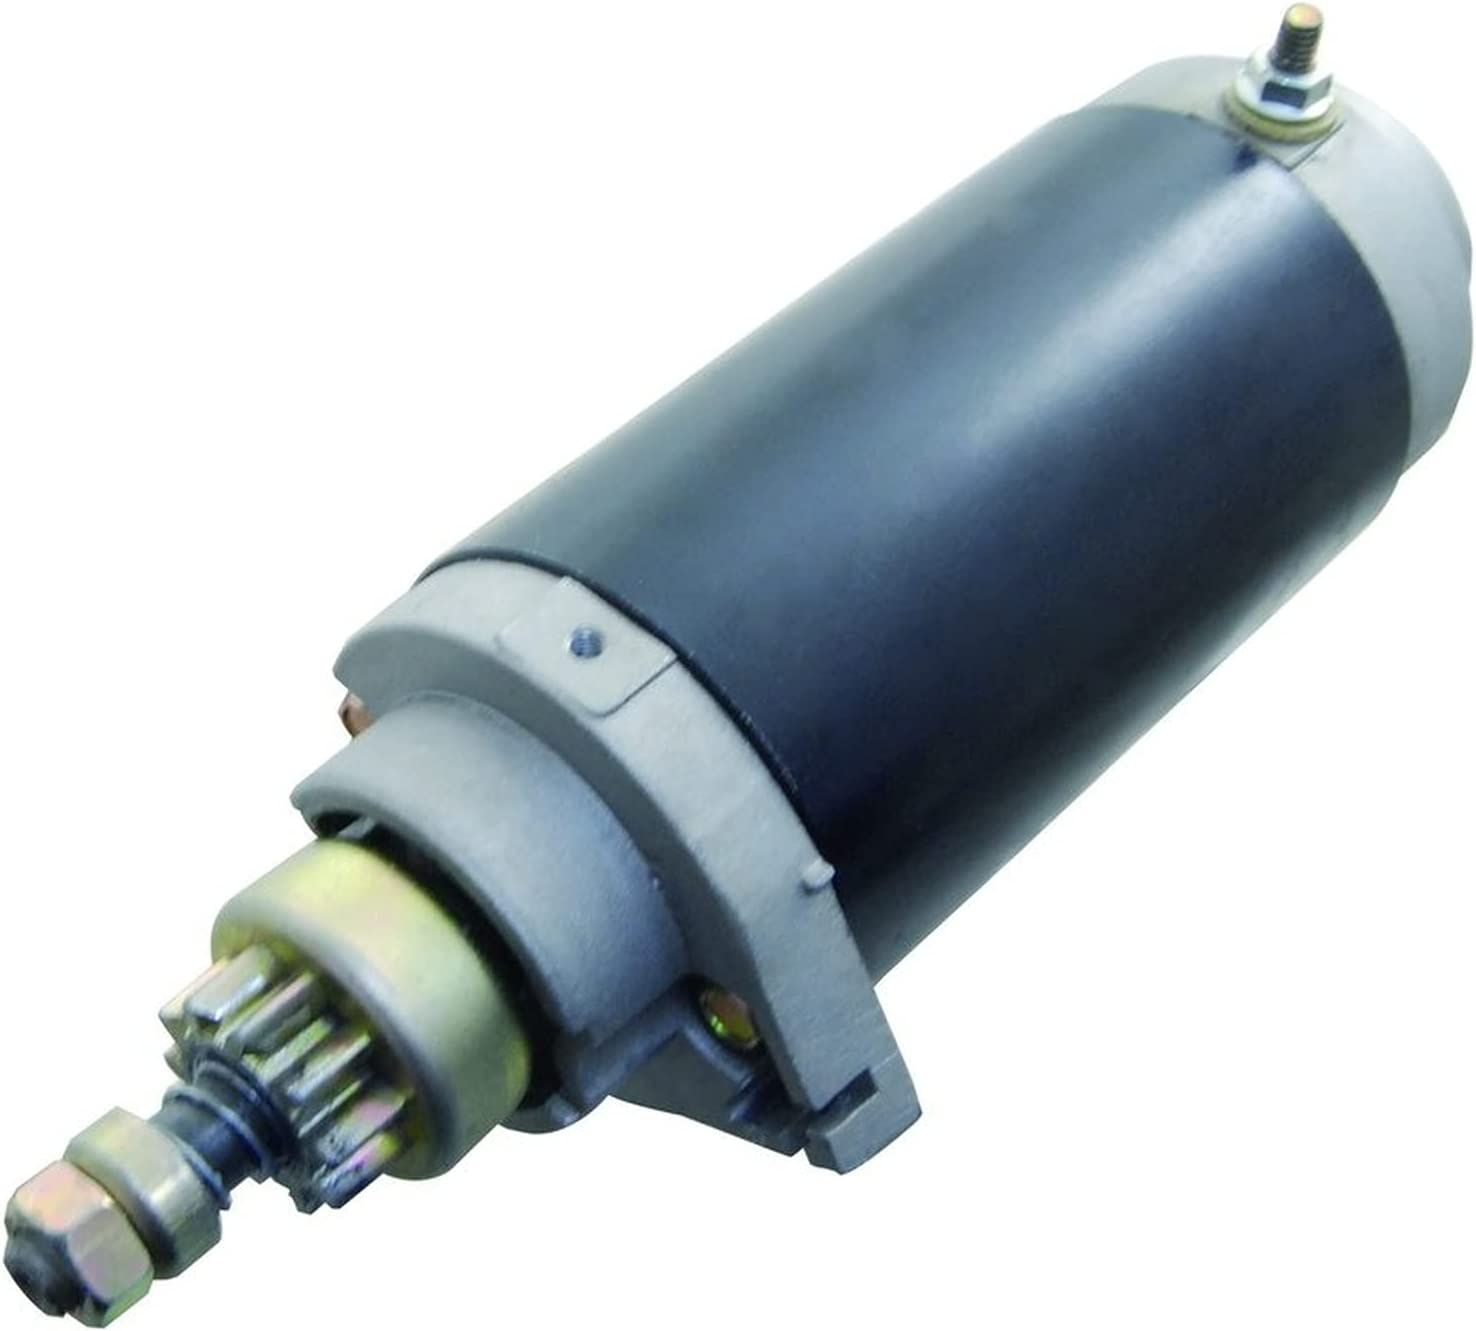 New Starter Free shipping Replacement For Outboard Mariner Mercury Selling 70 60 50 75